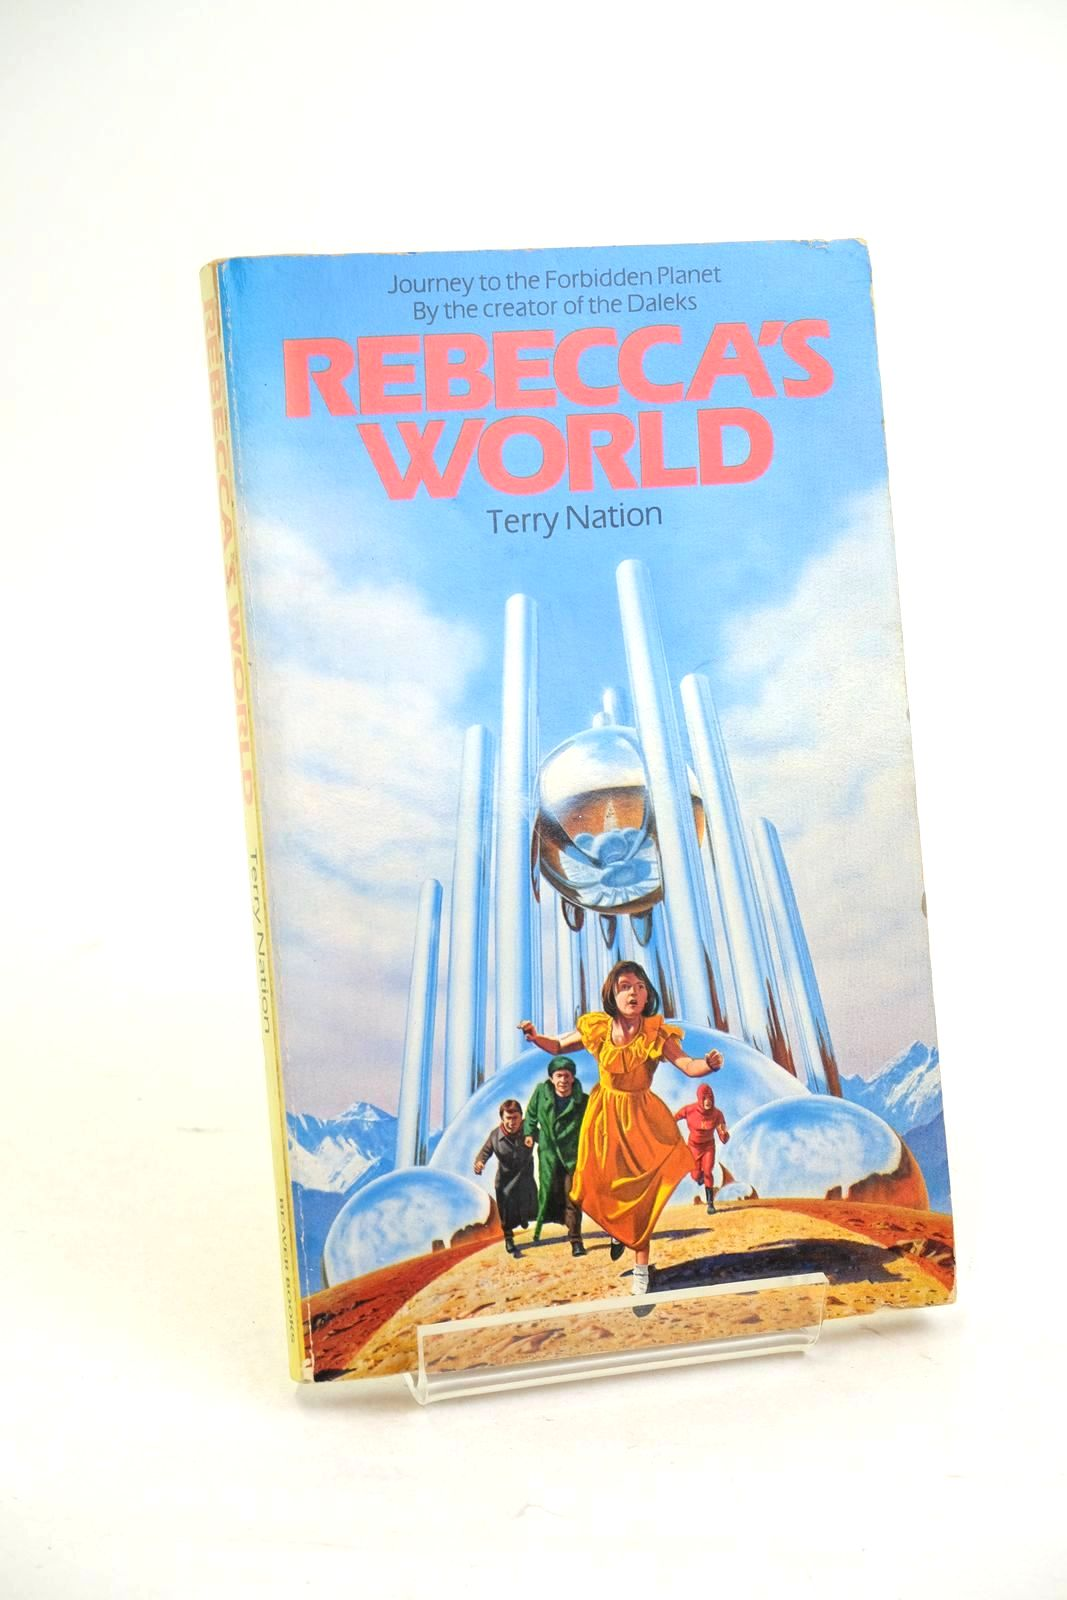 Photo of REBECCA'S WORLD JOURNEY TO THE FORBIDDEN PLANET written by Nation, Terry illustrated by Learmonth, Larry published by Beaver Books, Arrow Books Limited (STOCK CODE: 1321082)  for sale by Stella & Rose's Books